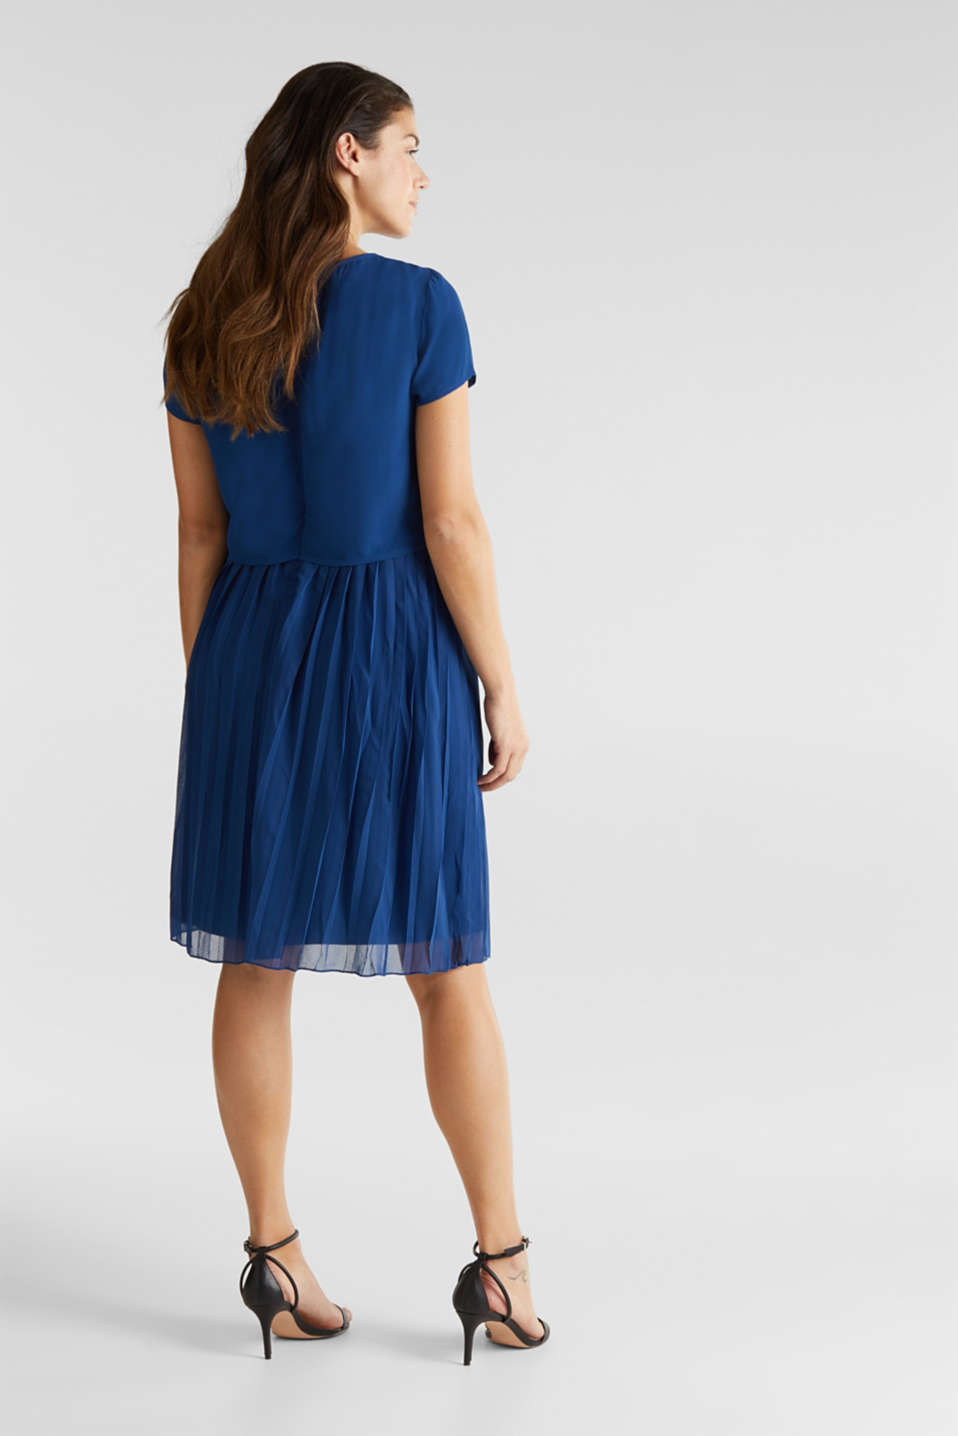 Pleated dress a nursing function, LCBRIGHT BLUE, detail image number 3